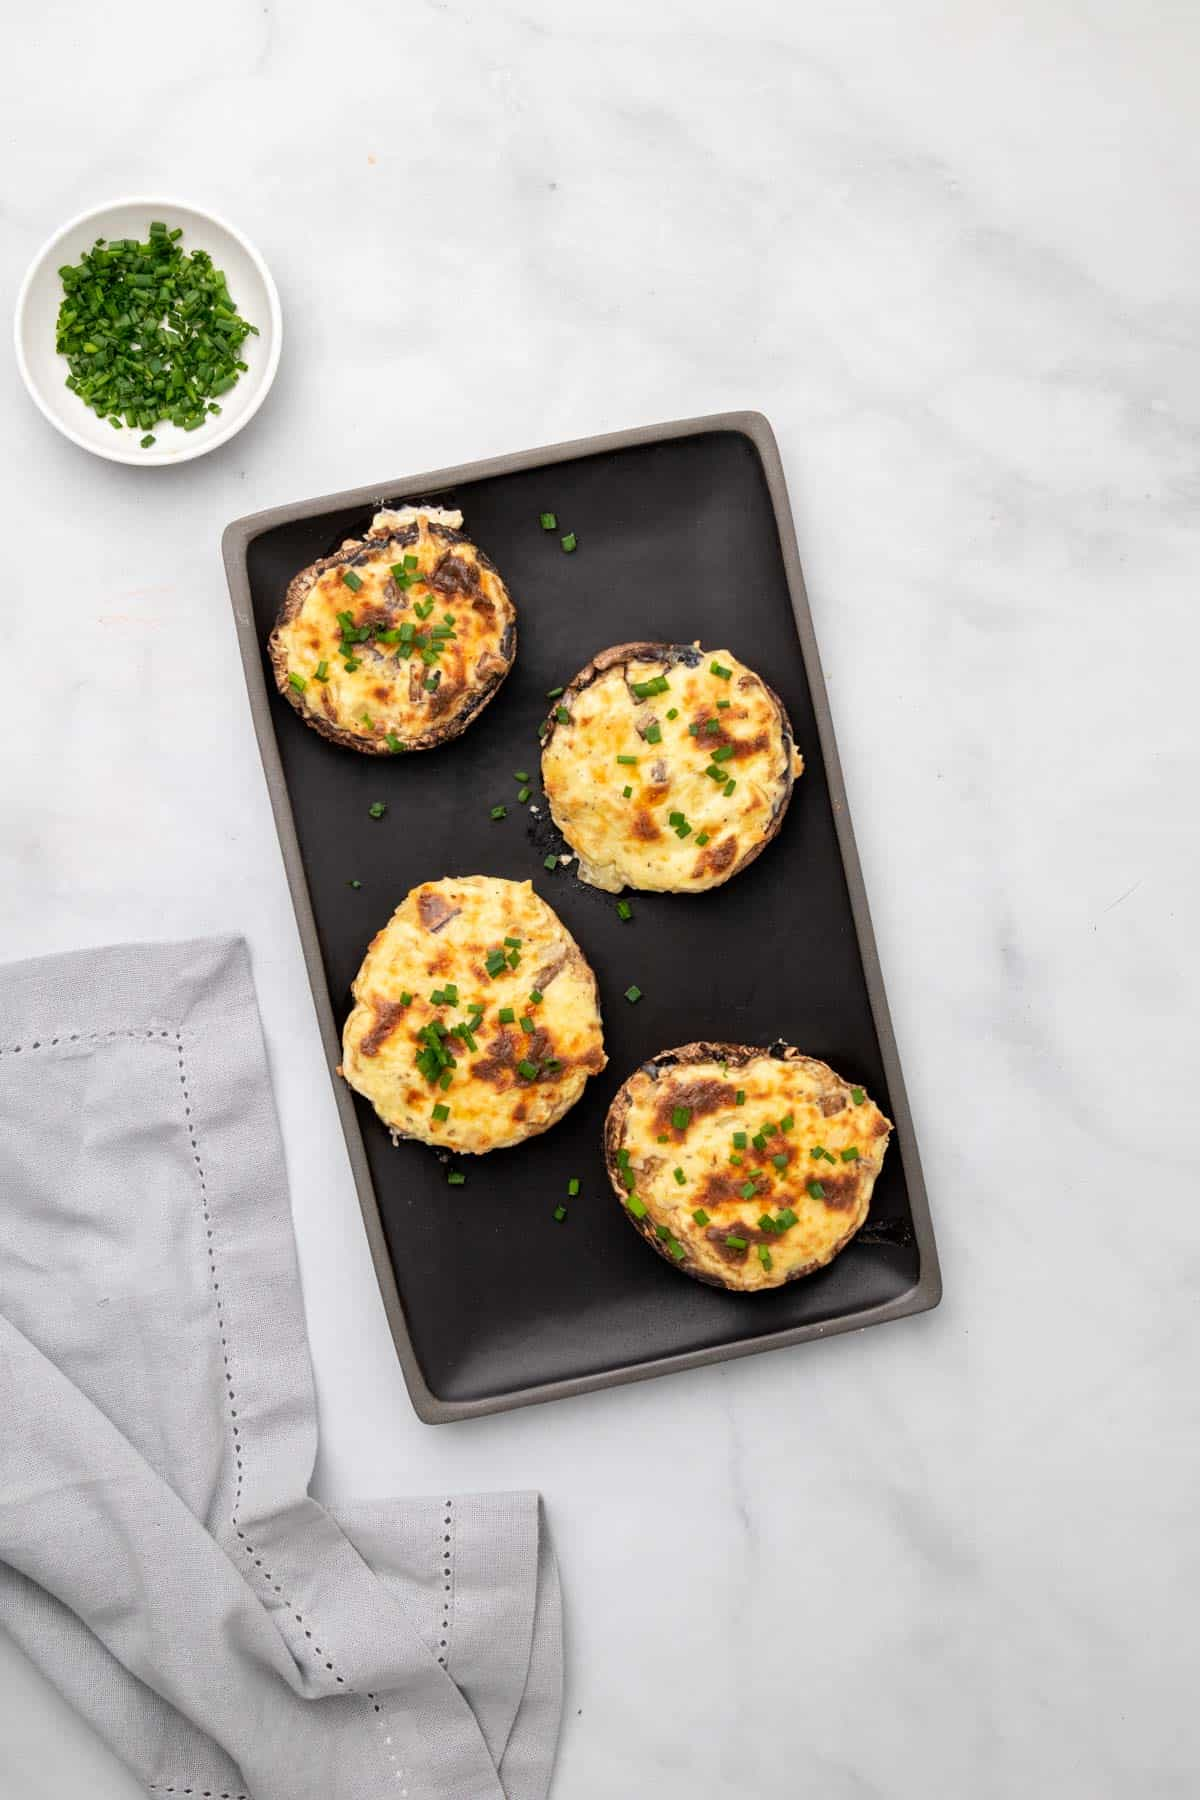 Overhead view of baked mushrooms stuffed with cheese on a baking tray next to a ramekin of fresh chives